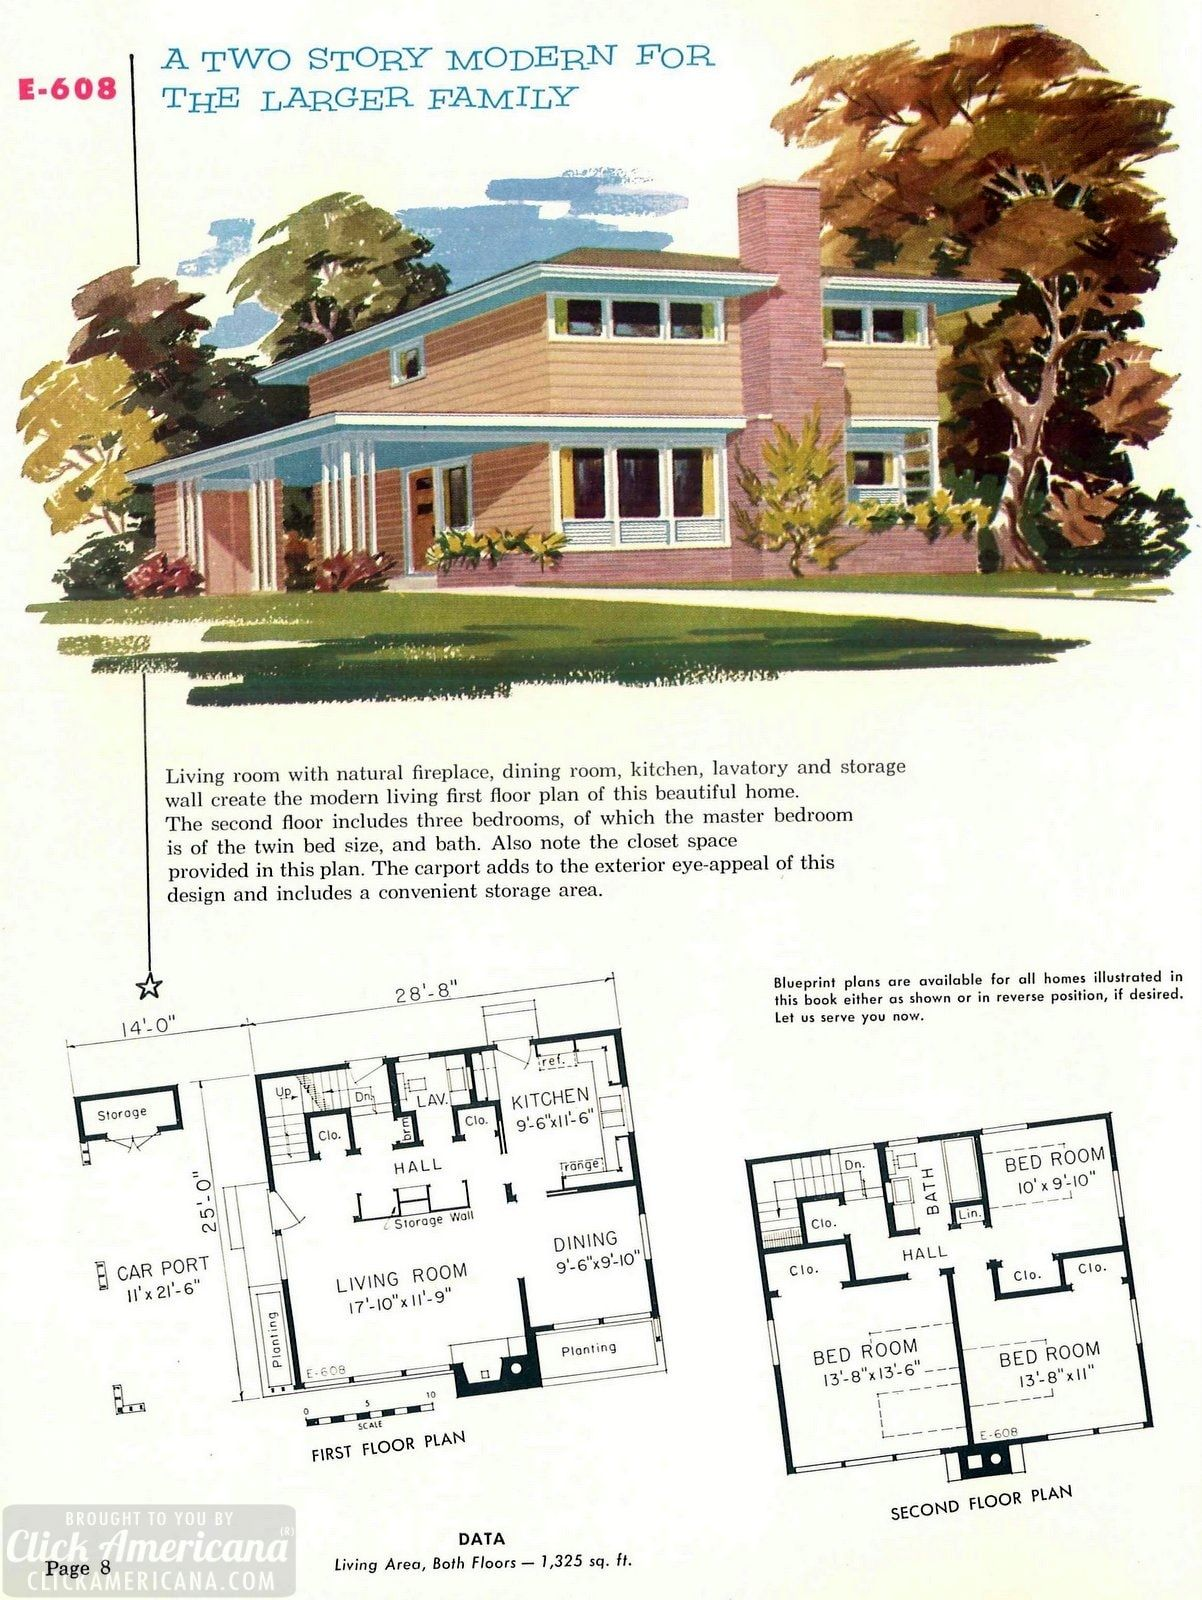 130 Vintage 50s House Plans Used To Build Millions Of Mid Century Homes We Still Live In Today In 2021 Mid Century Modern House Plans Mid Century Modern House Vintage House Plans